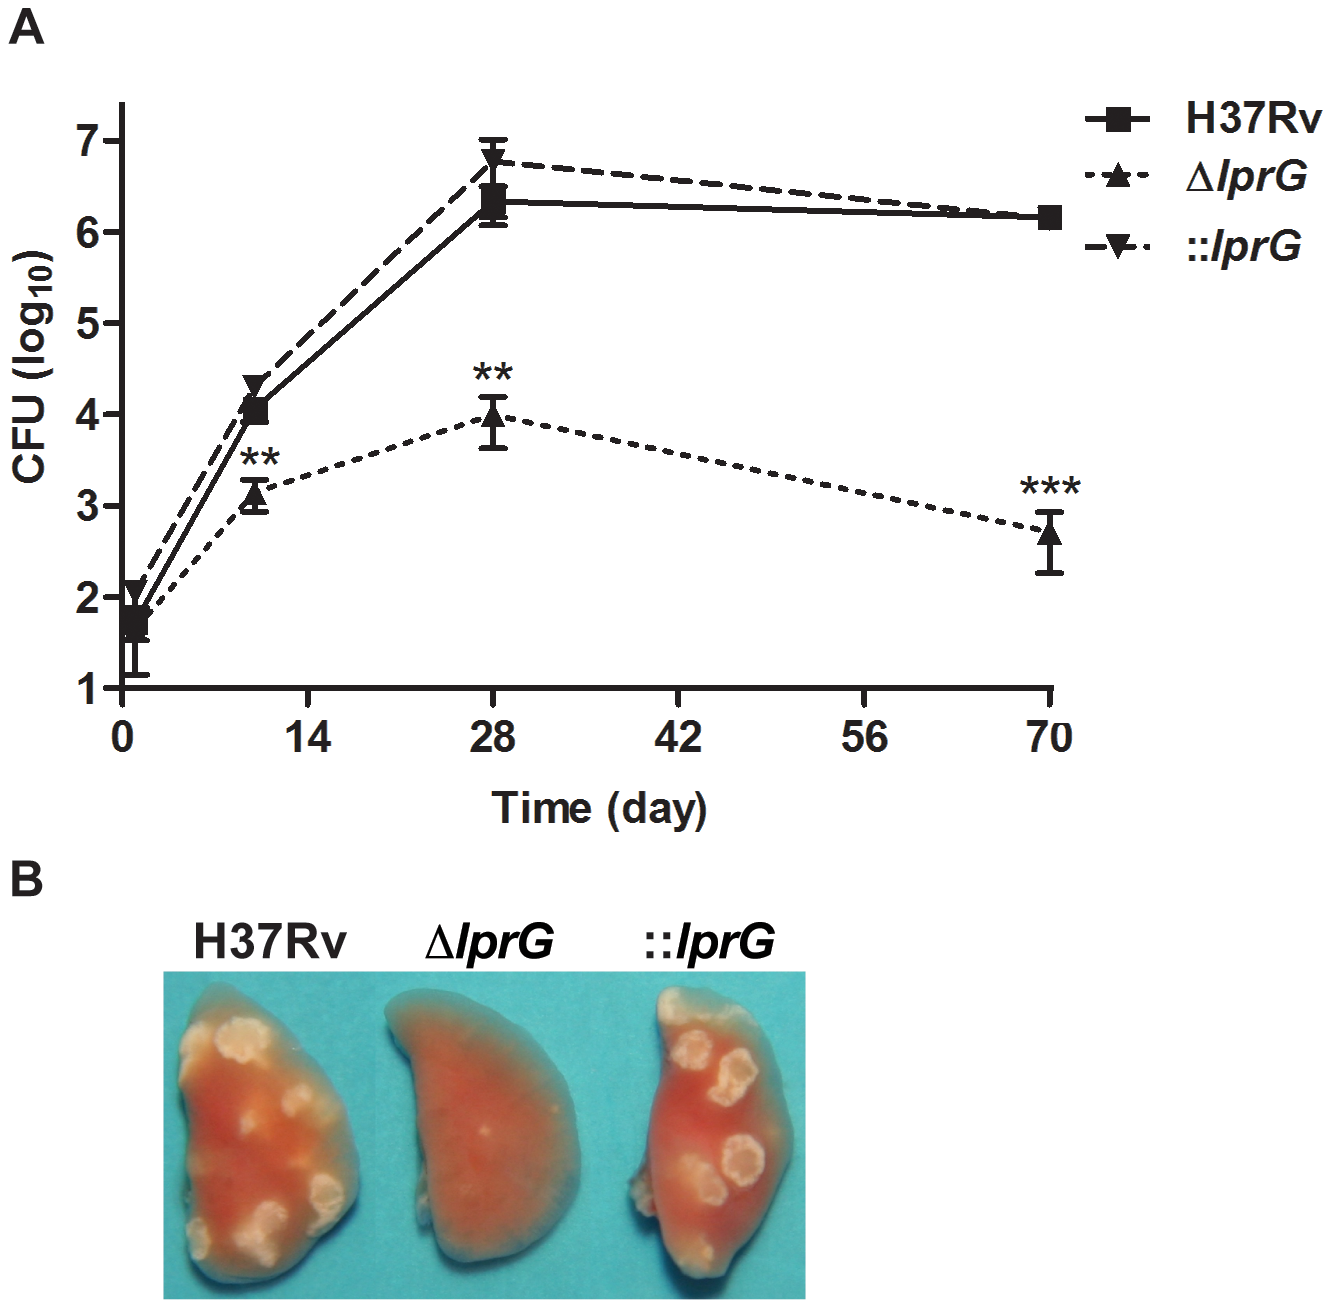 The <i>lprG</i> mutant cannot persist in mouse lung.